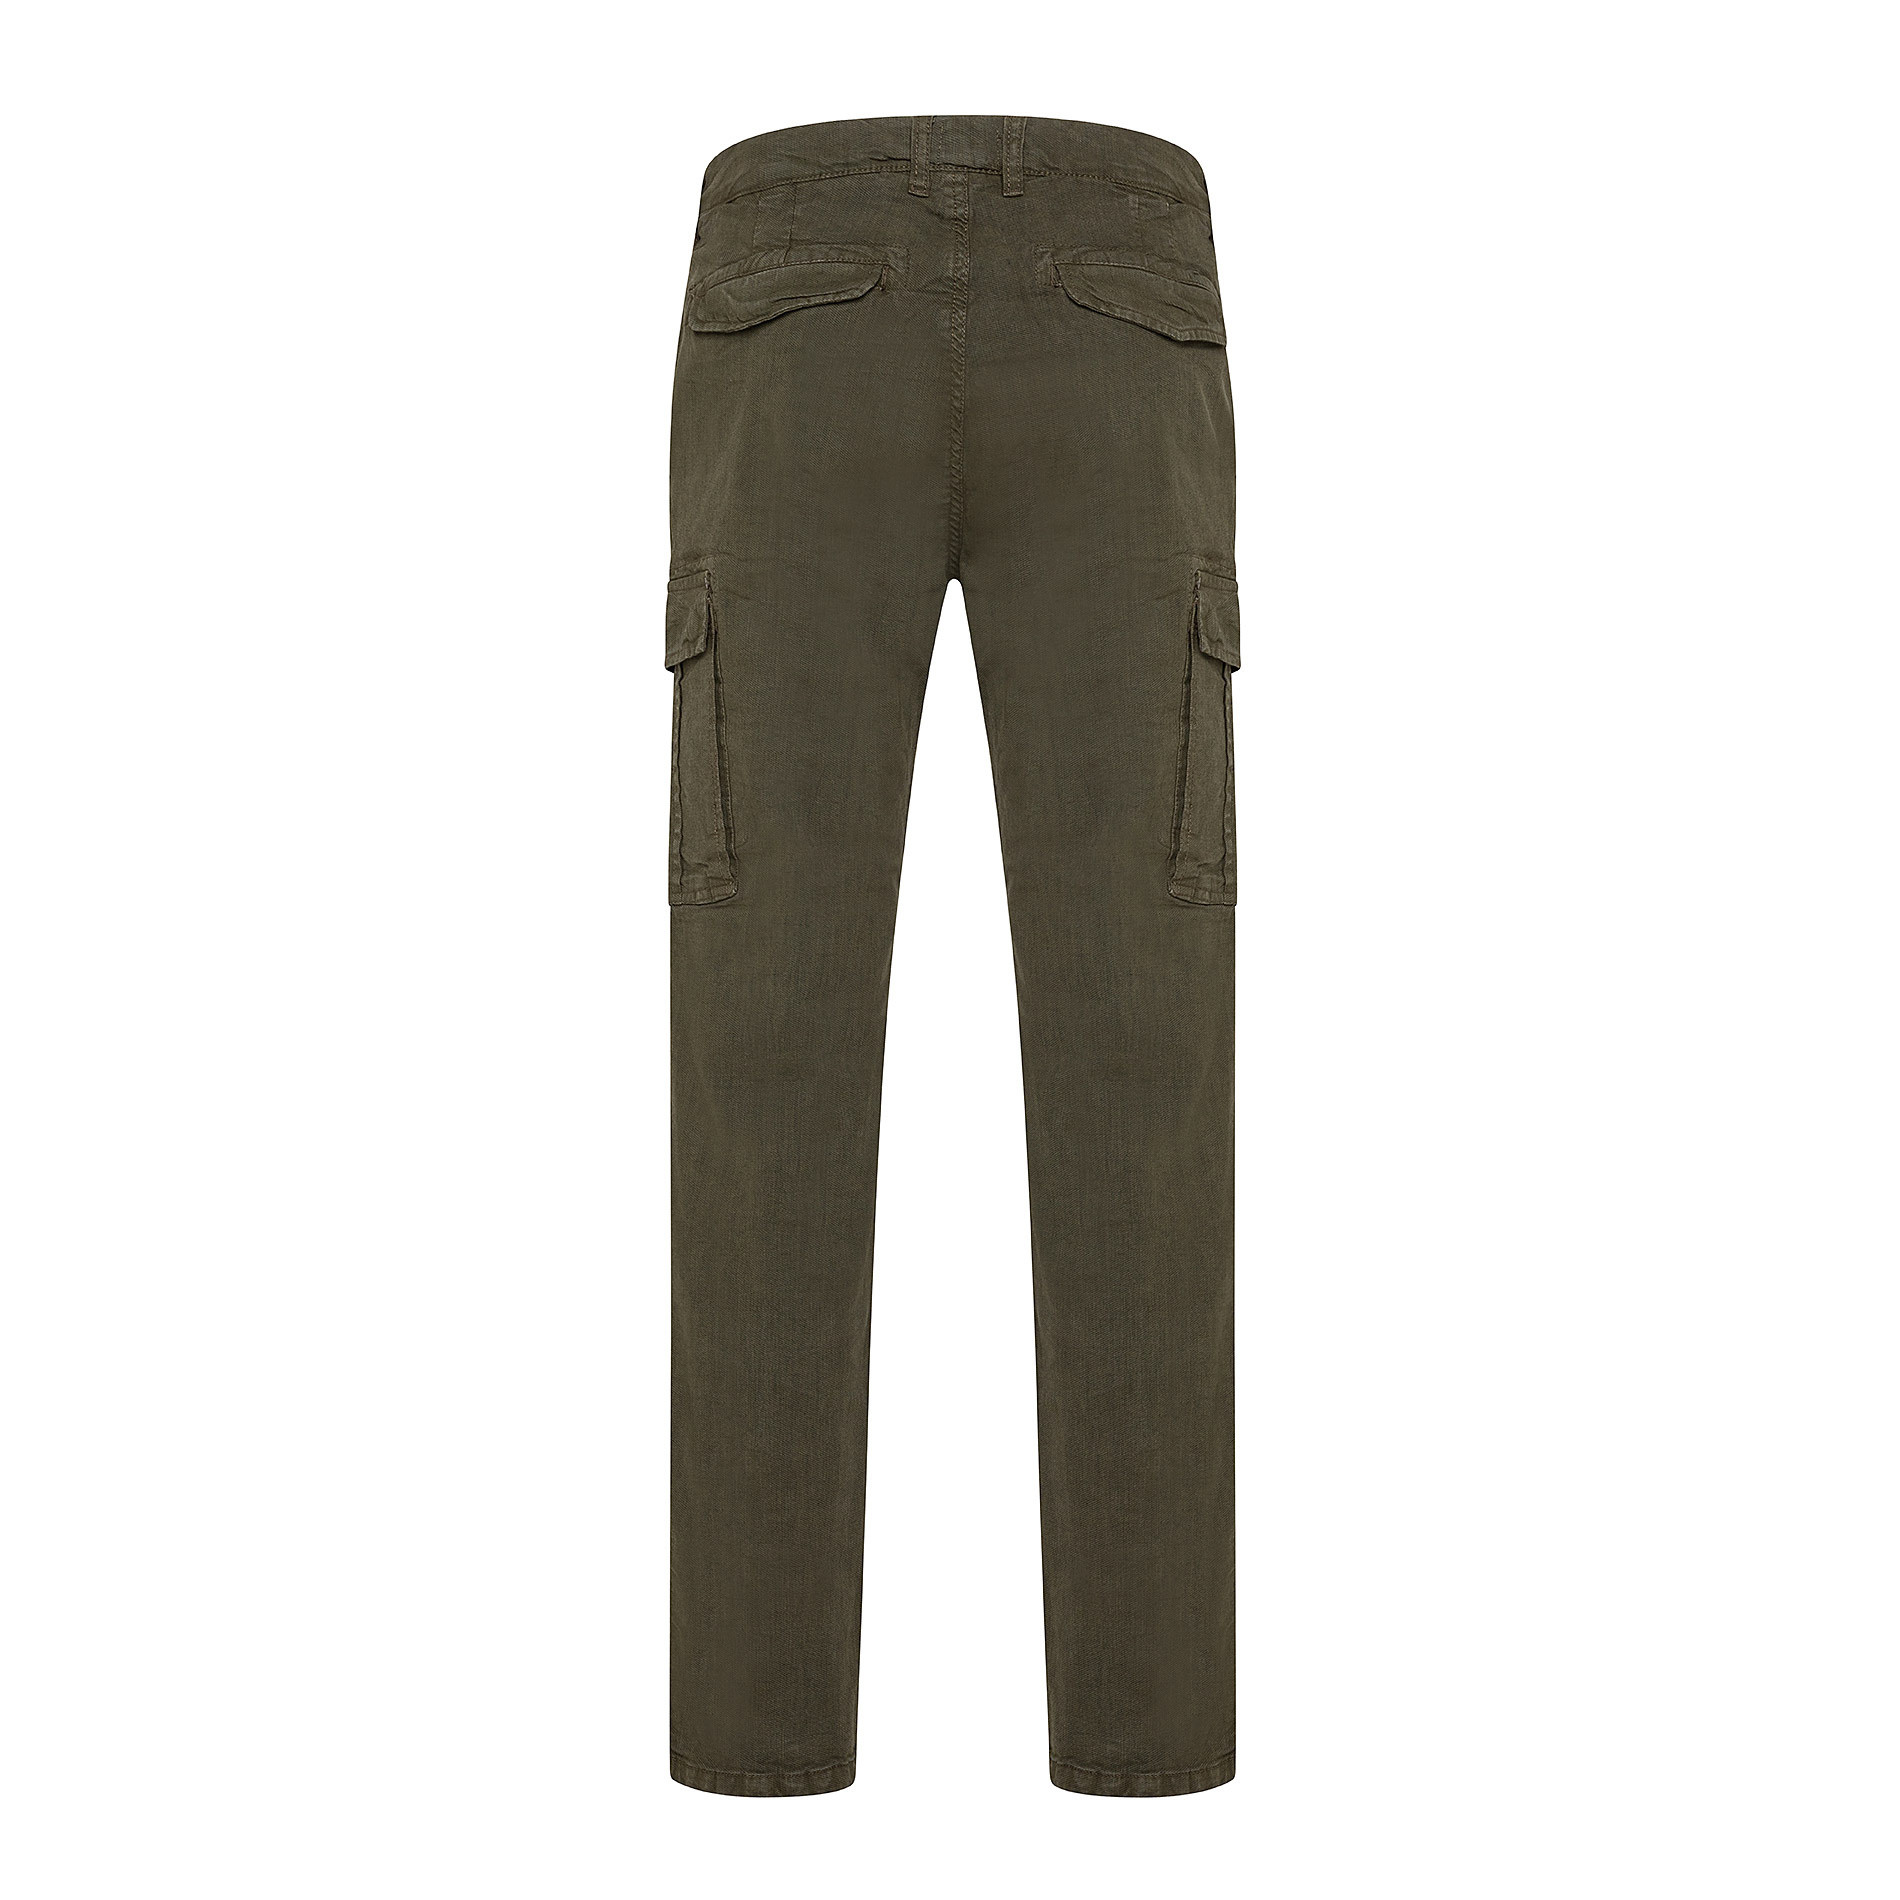 Pantalone cargo stretch con tasche, Verde scuro, large image number 1